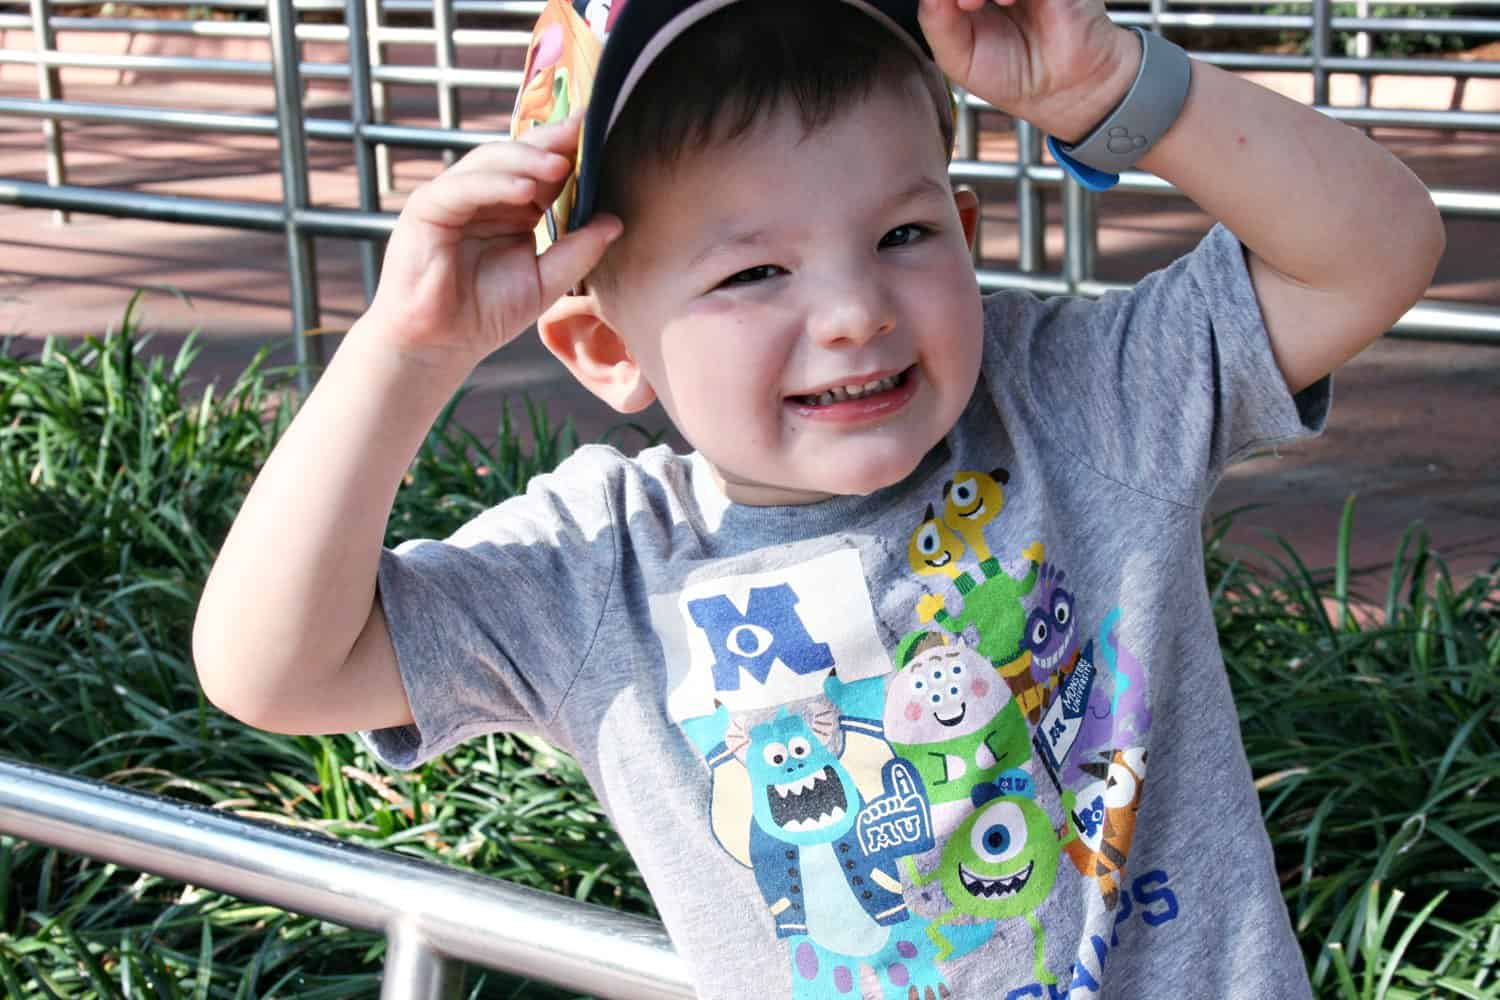 534d181642f95 Best Disney Outfits for Kids - What to Wear & Pack for Disney Parks